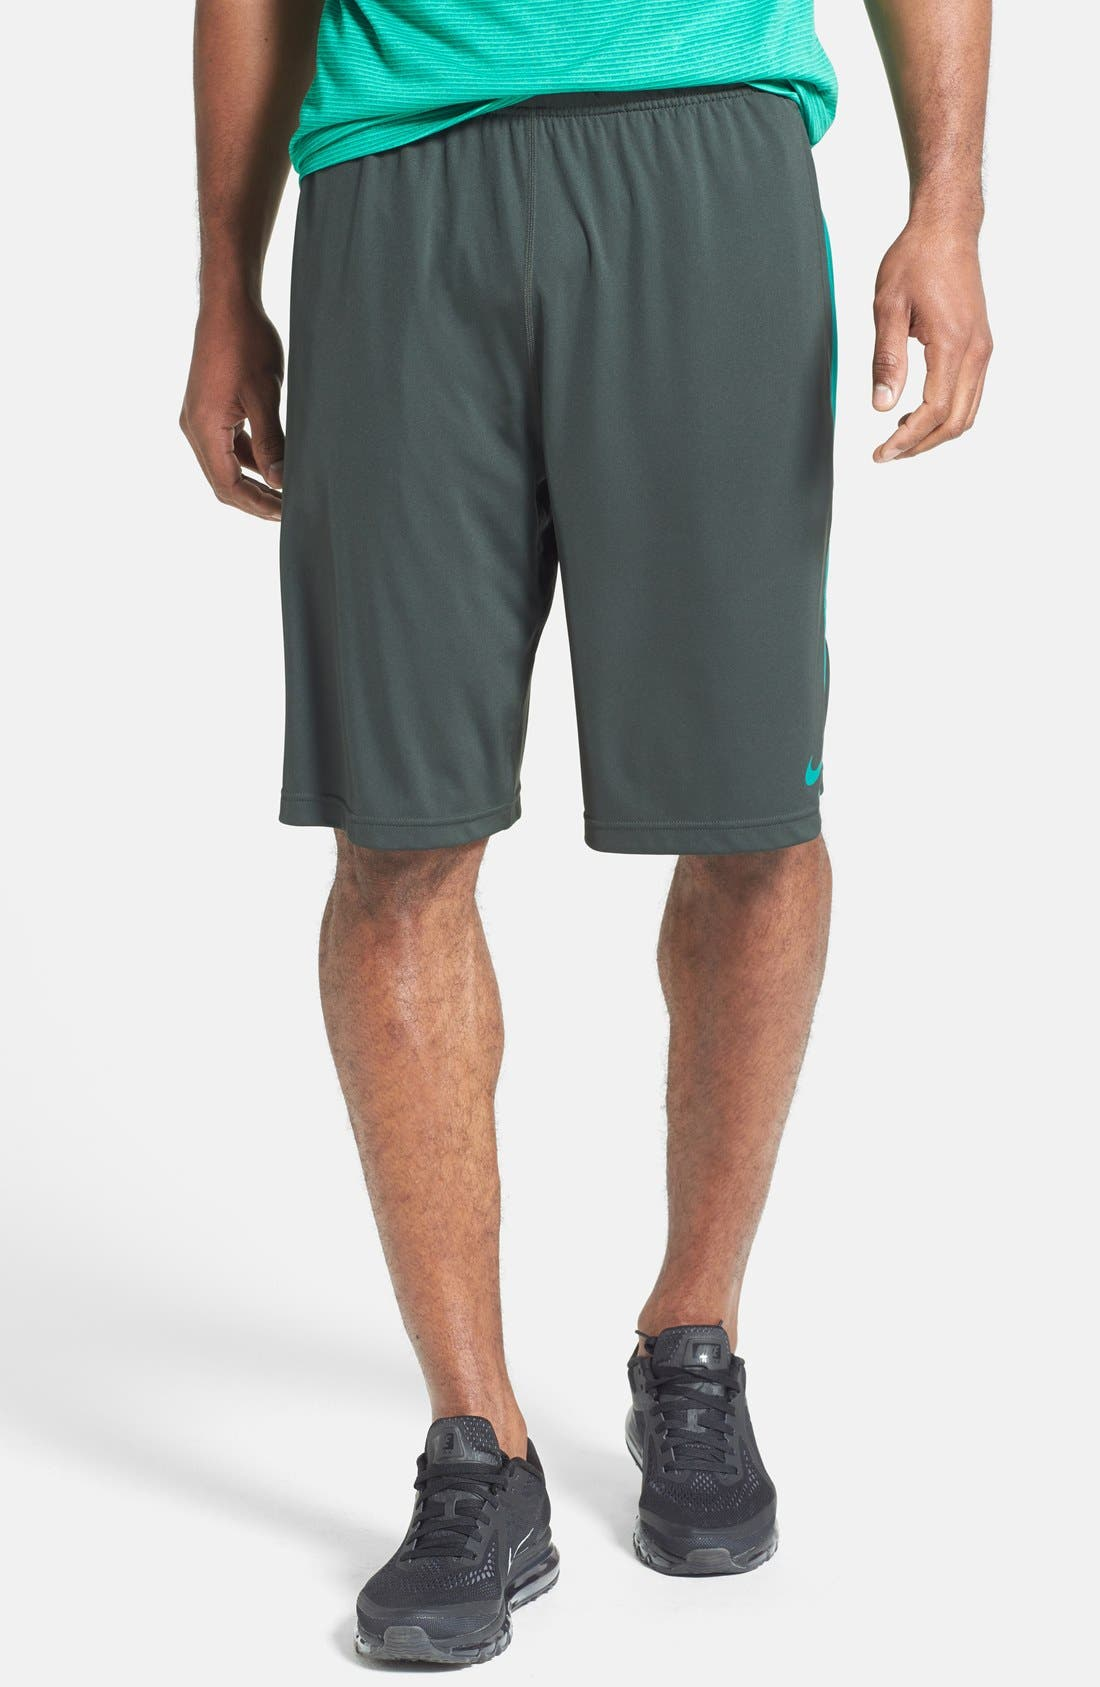 Main Image - Nike 'Fly 2.0' Dri-FIT Knit Training Shorts